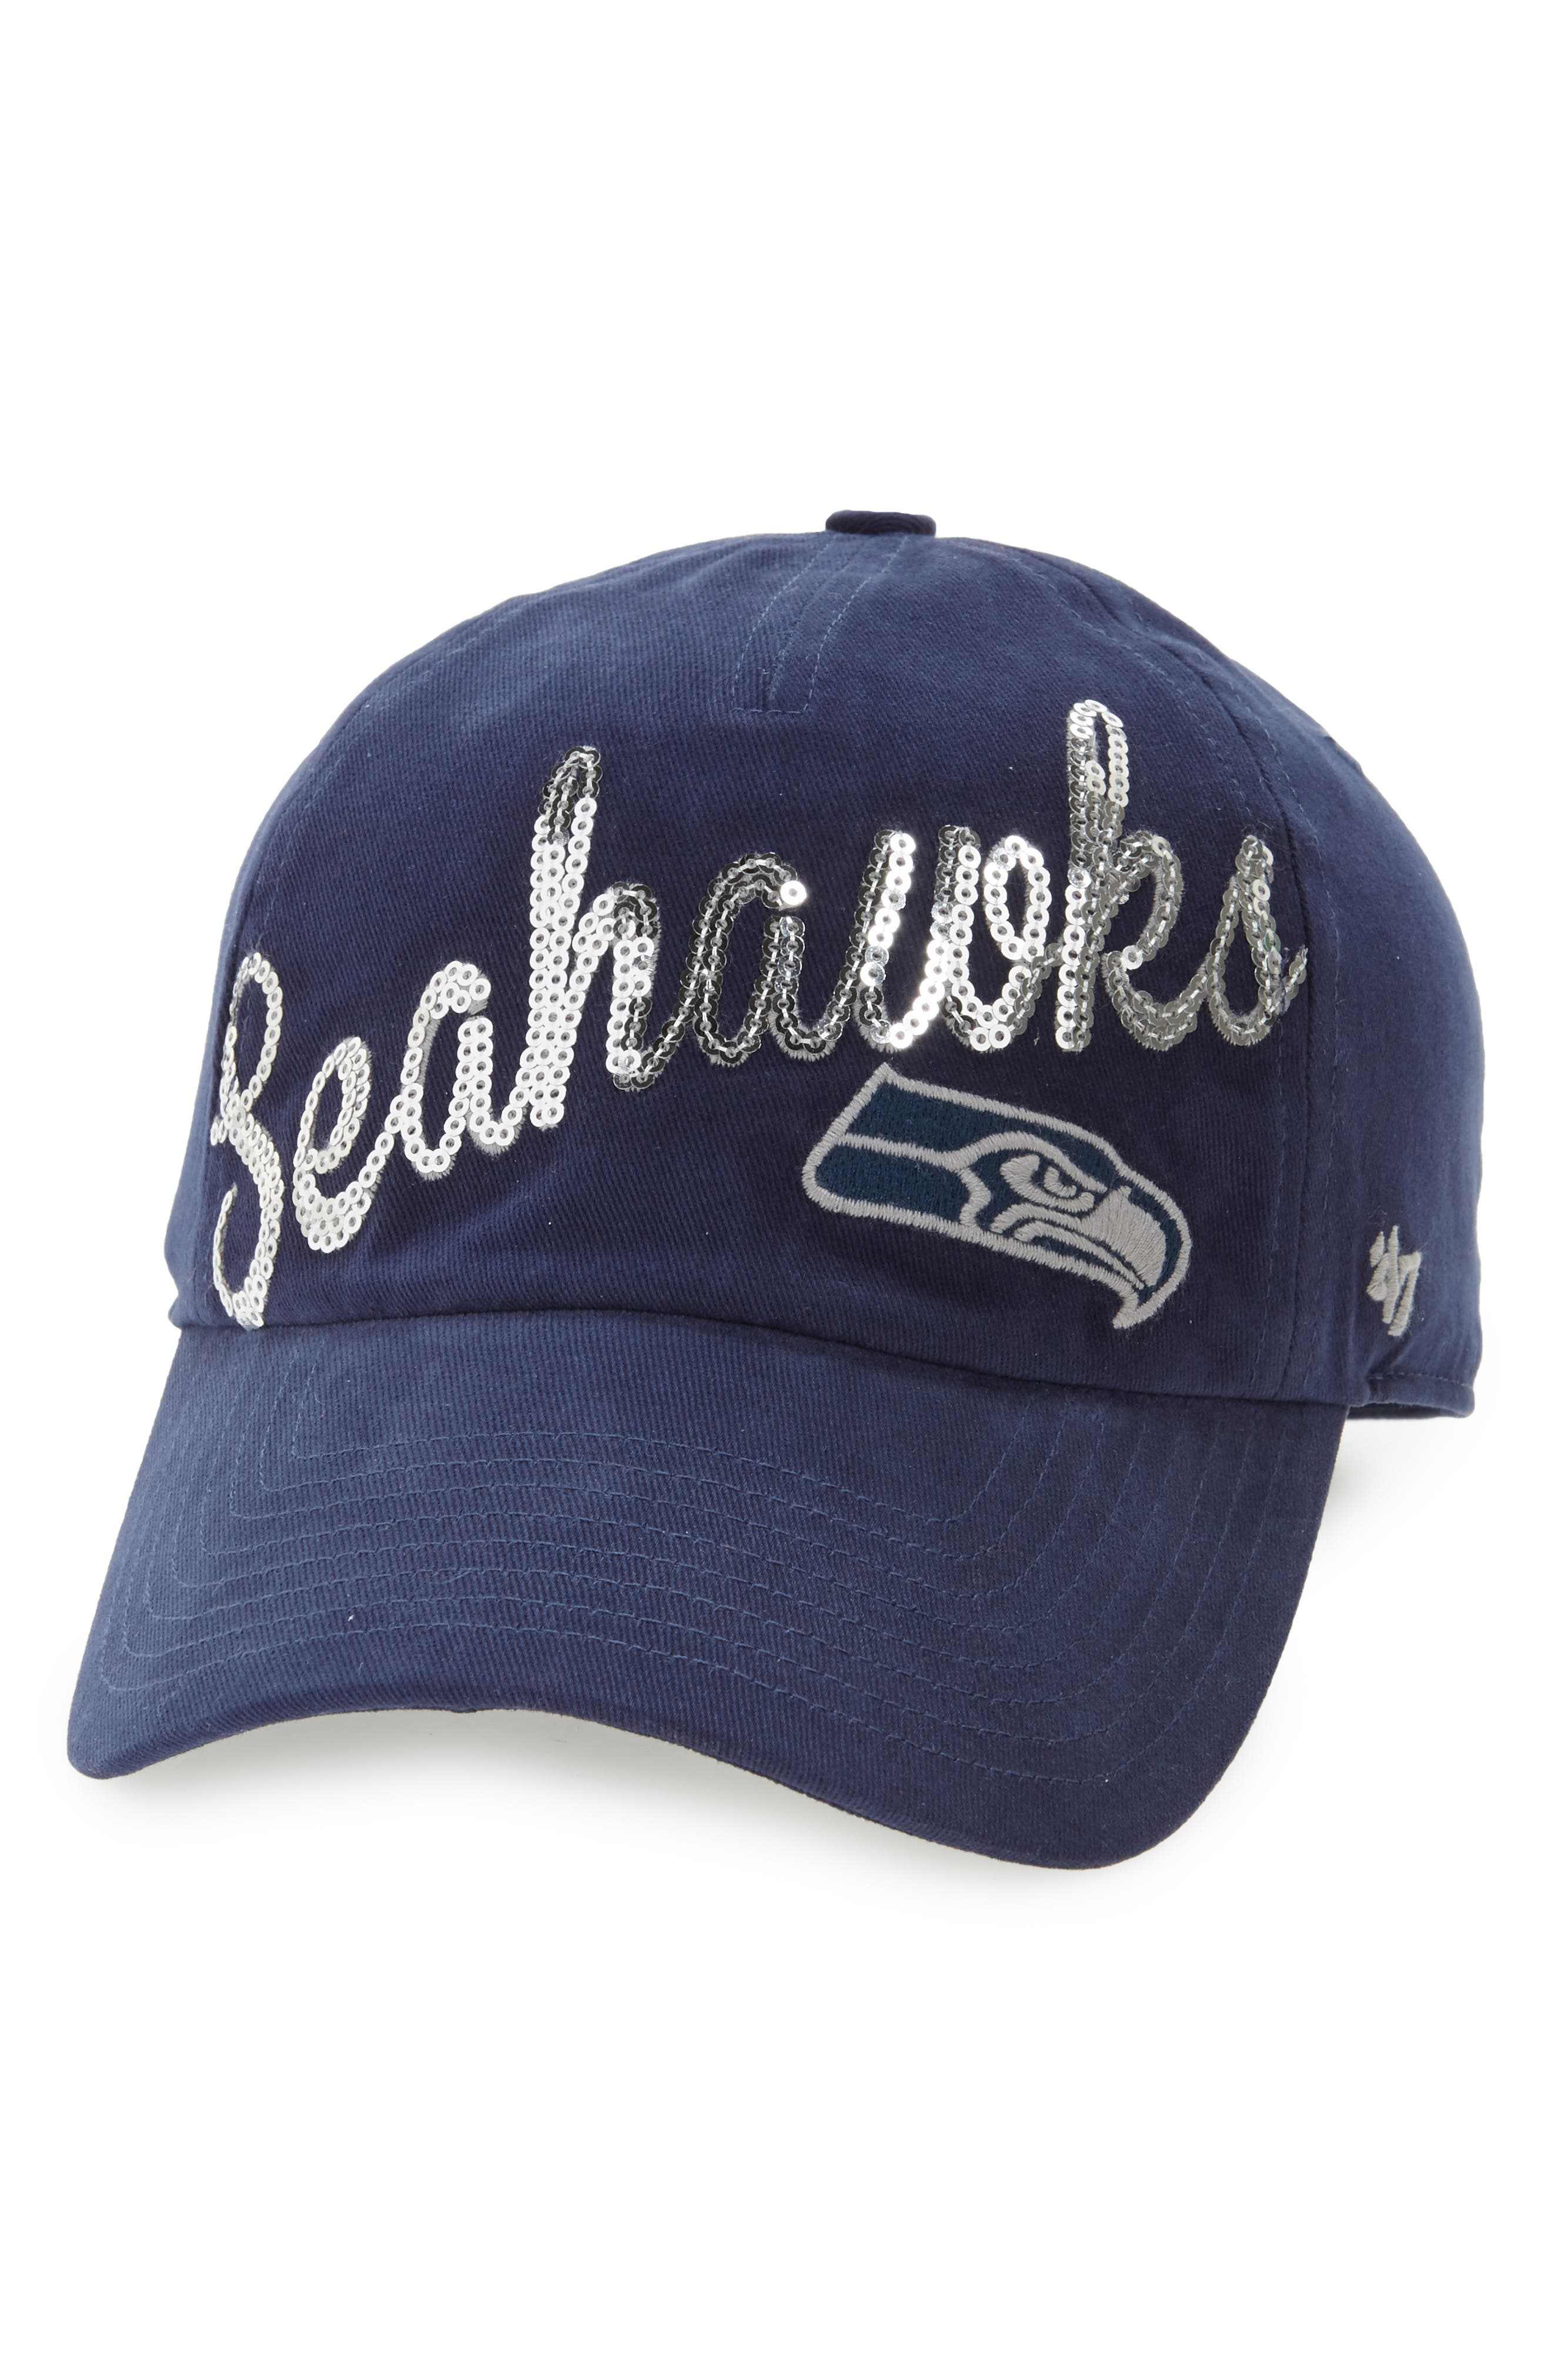 Main Image - '47 Seattle Seahawks Sparkle Cap